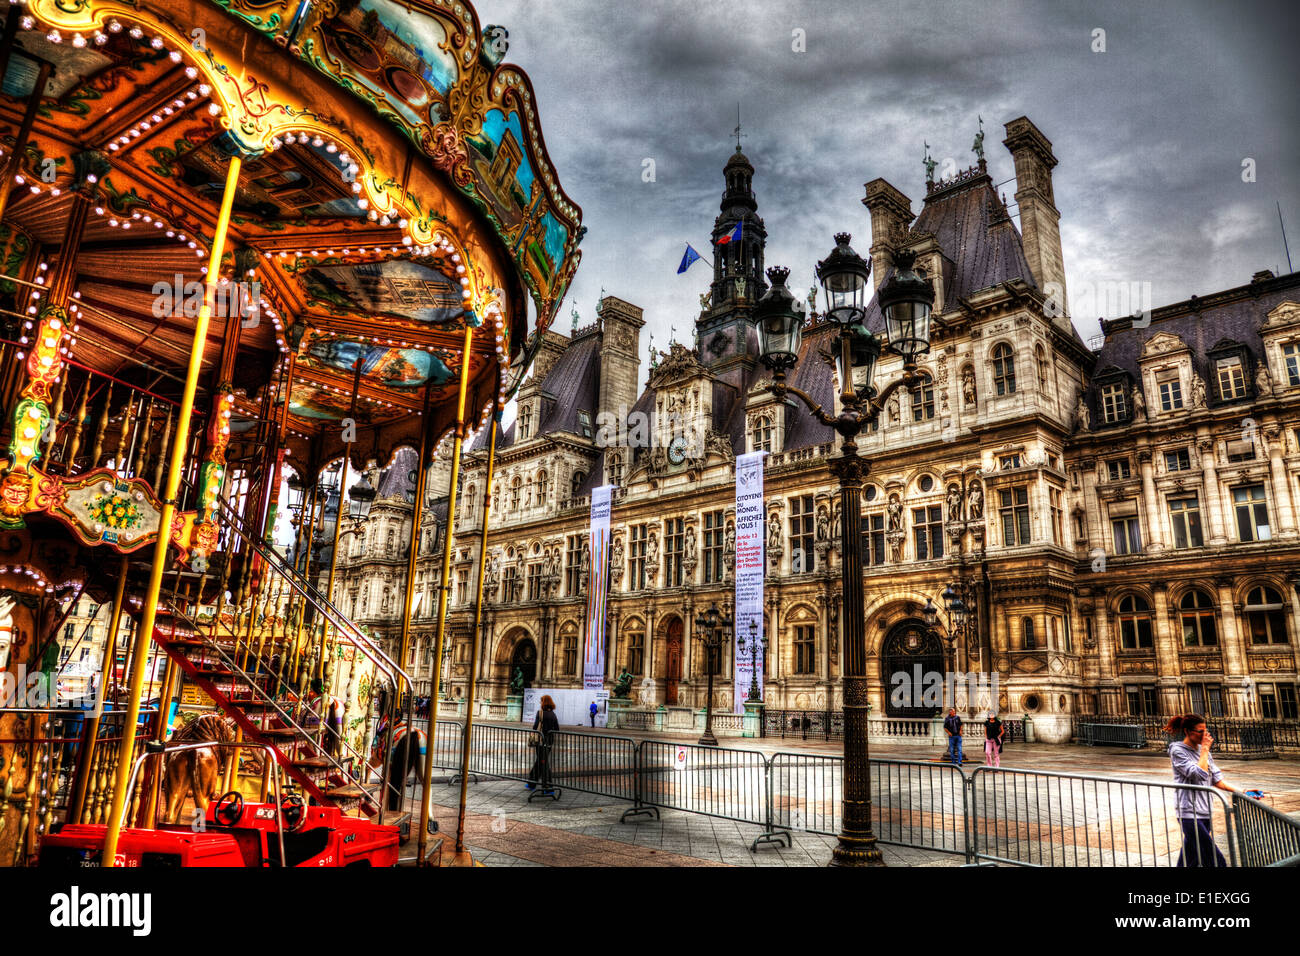 The Hotel de Ville (Town Hall), 4th Arrondissement, Paris, France front entrance exterior facade outside - Stock Image